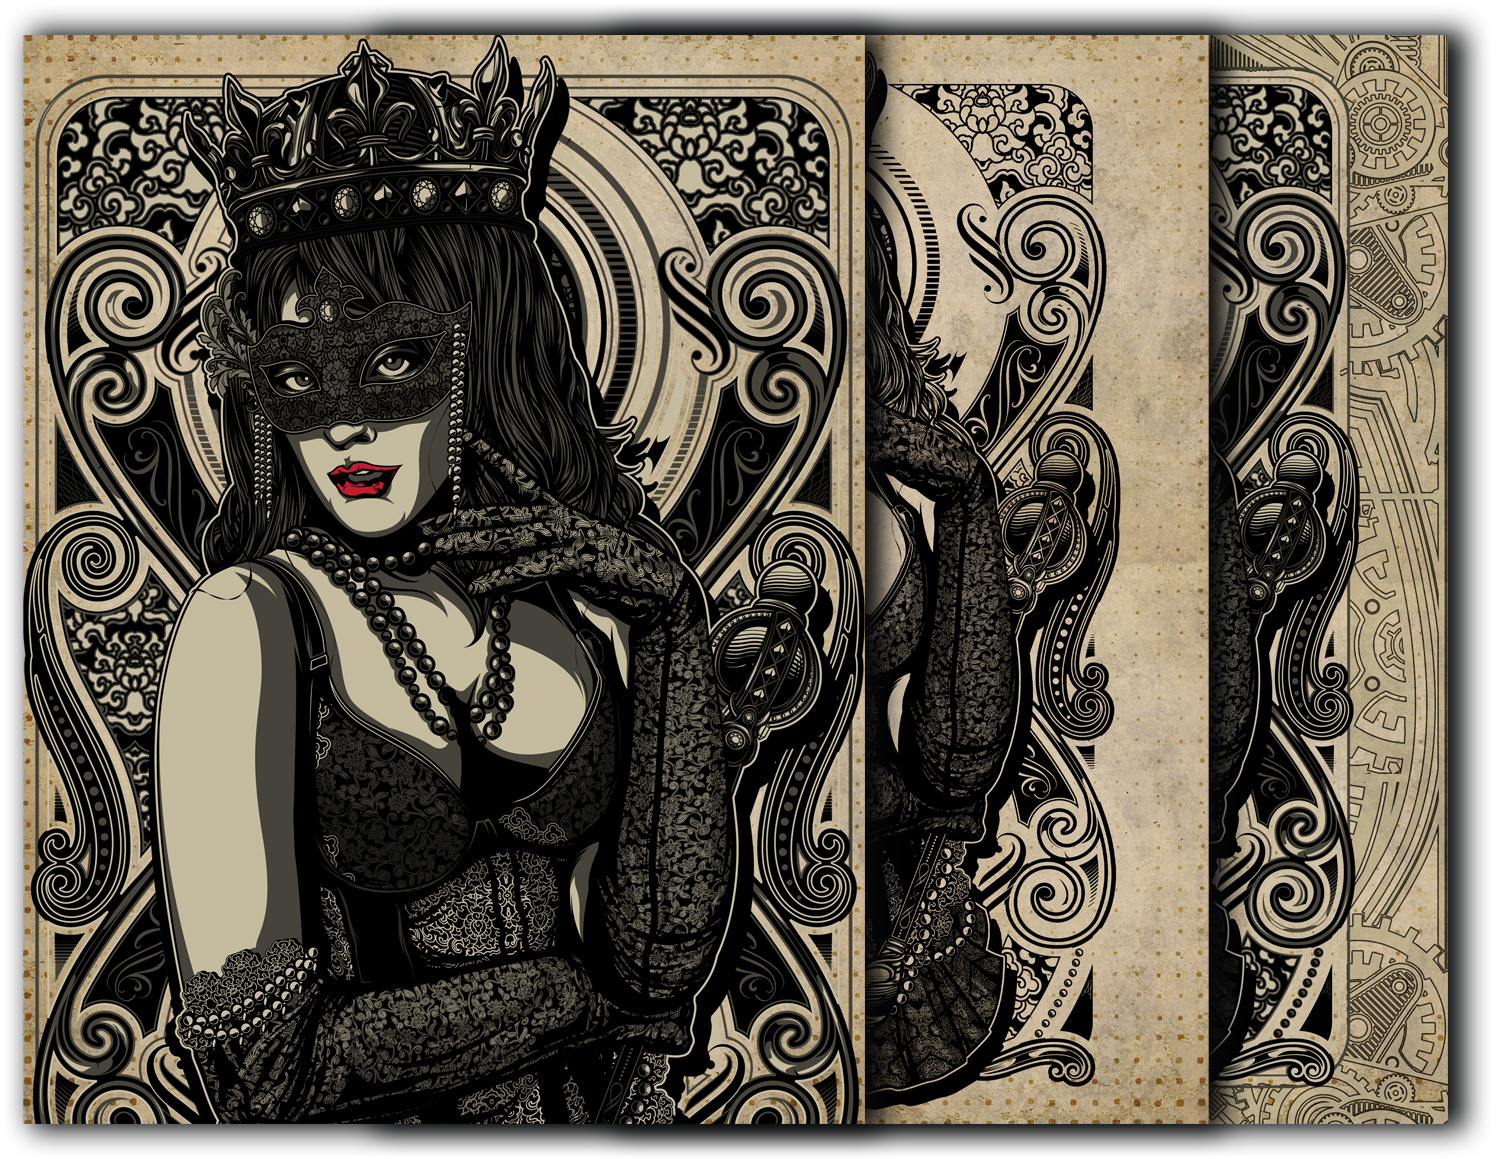 Book of Shadows Front cover- Queen